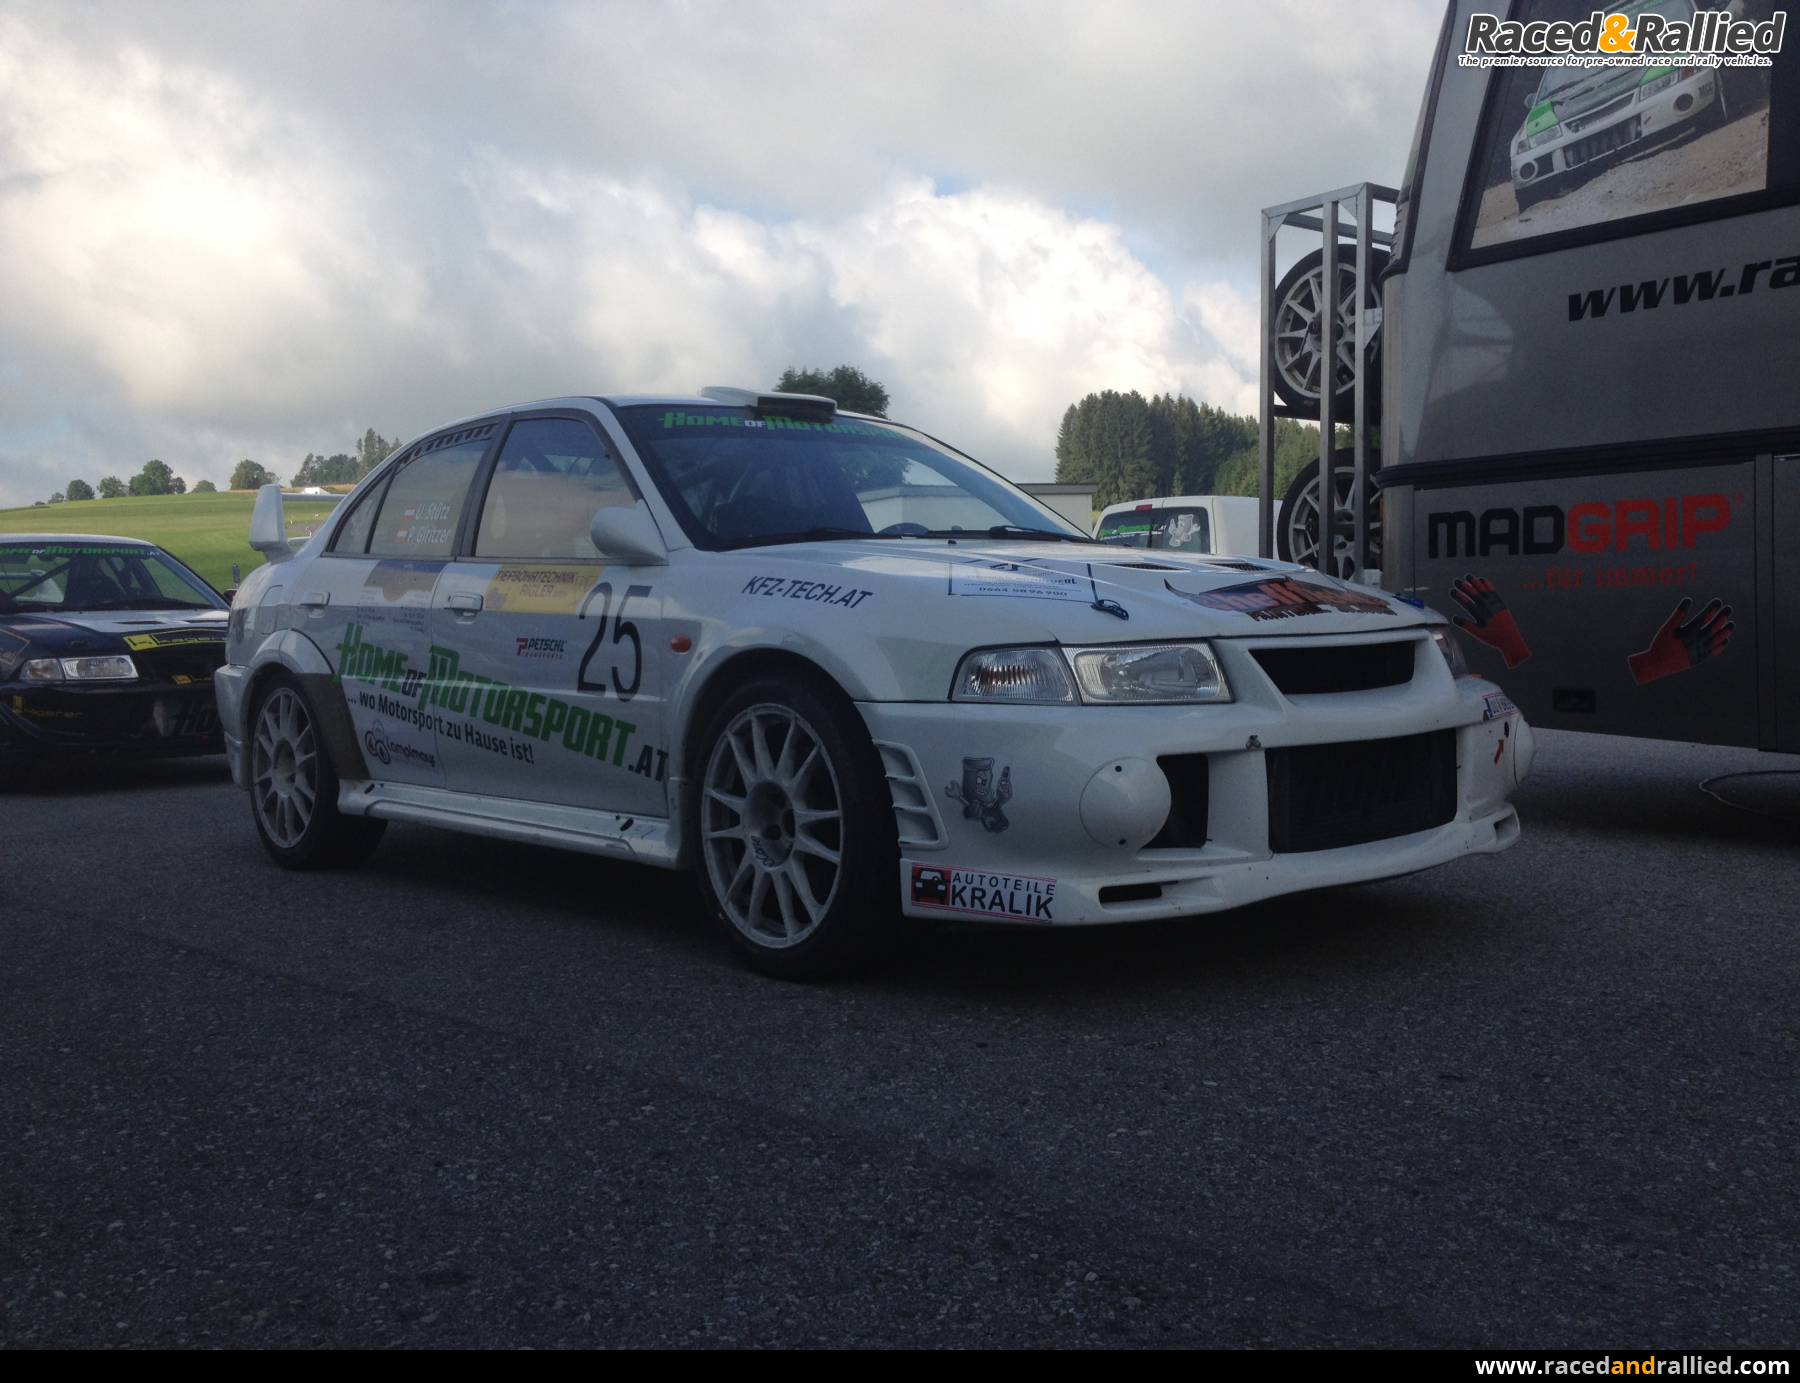 mitsubishi evo 6 for sale rent rally cars for sale at raced rallied rally cars for sale. Black Bedroom Furniture Sets. Home Design Ideas